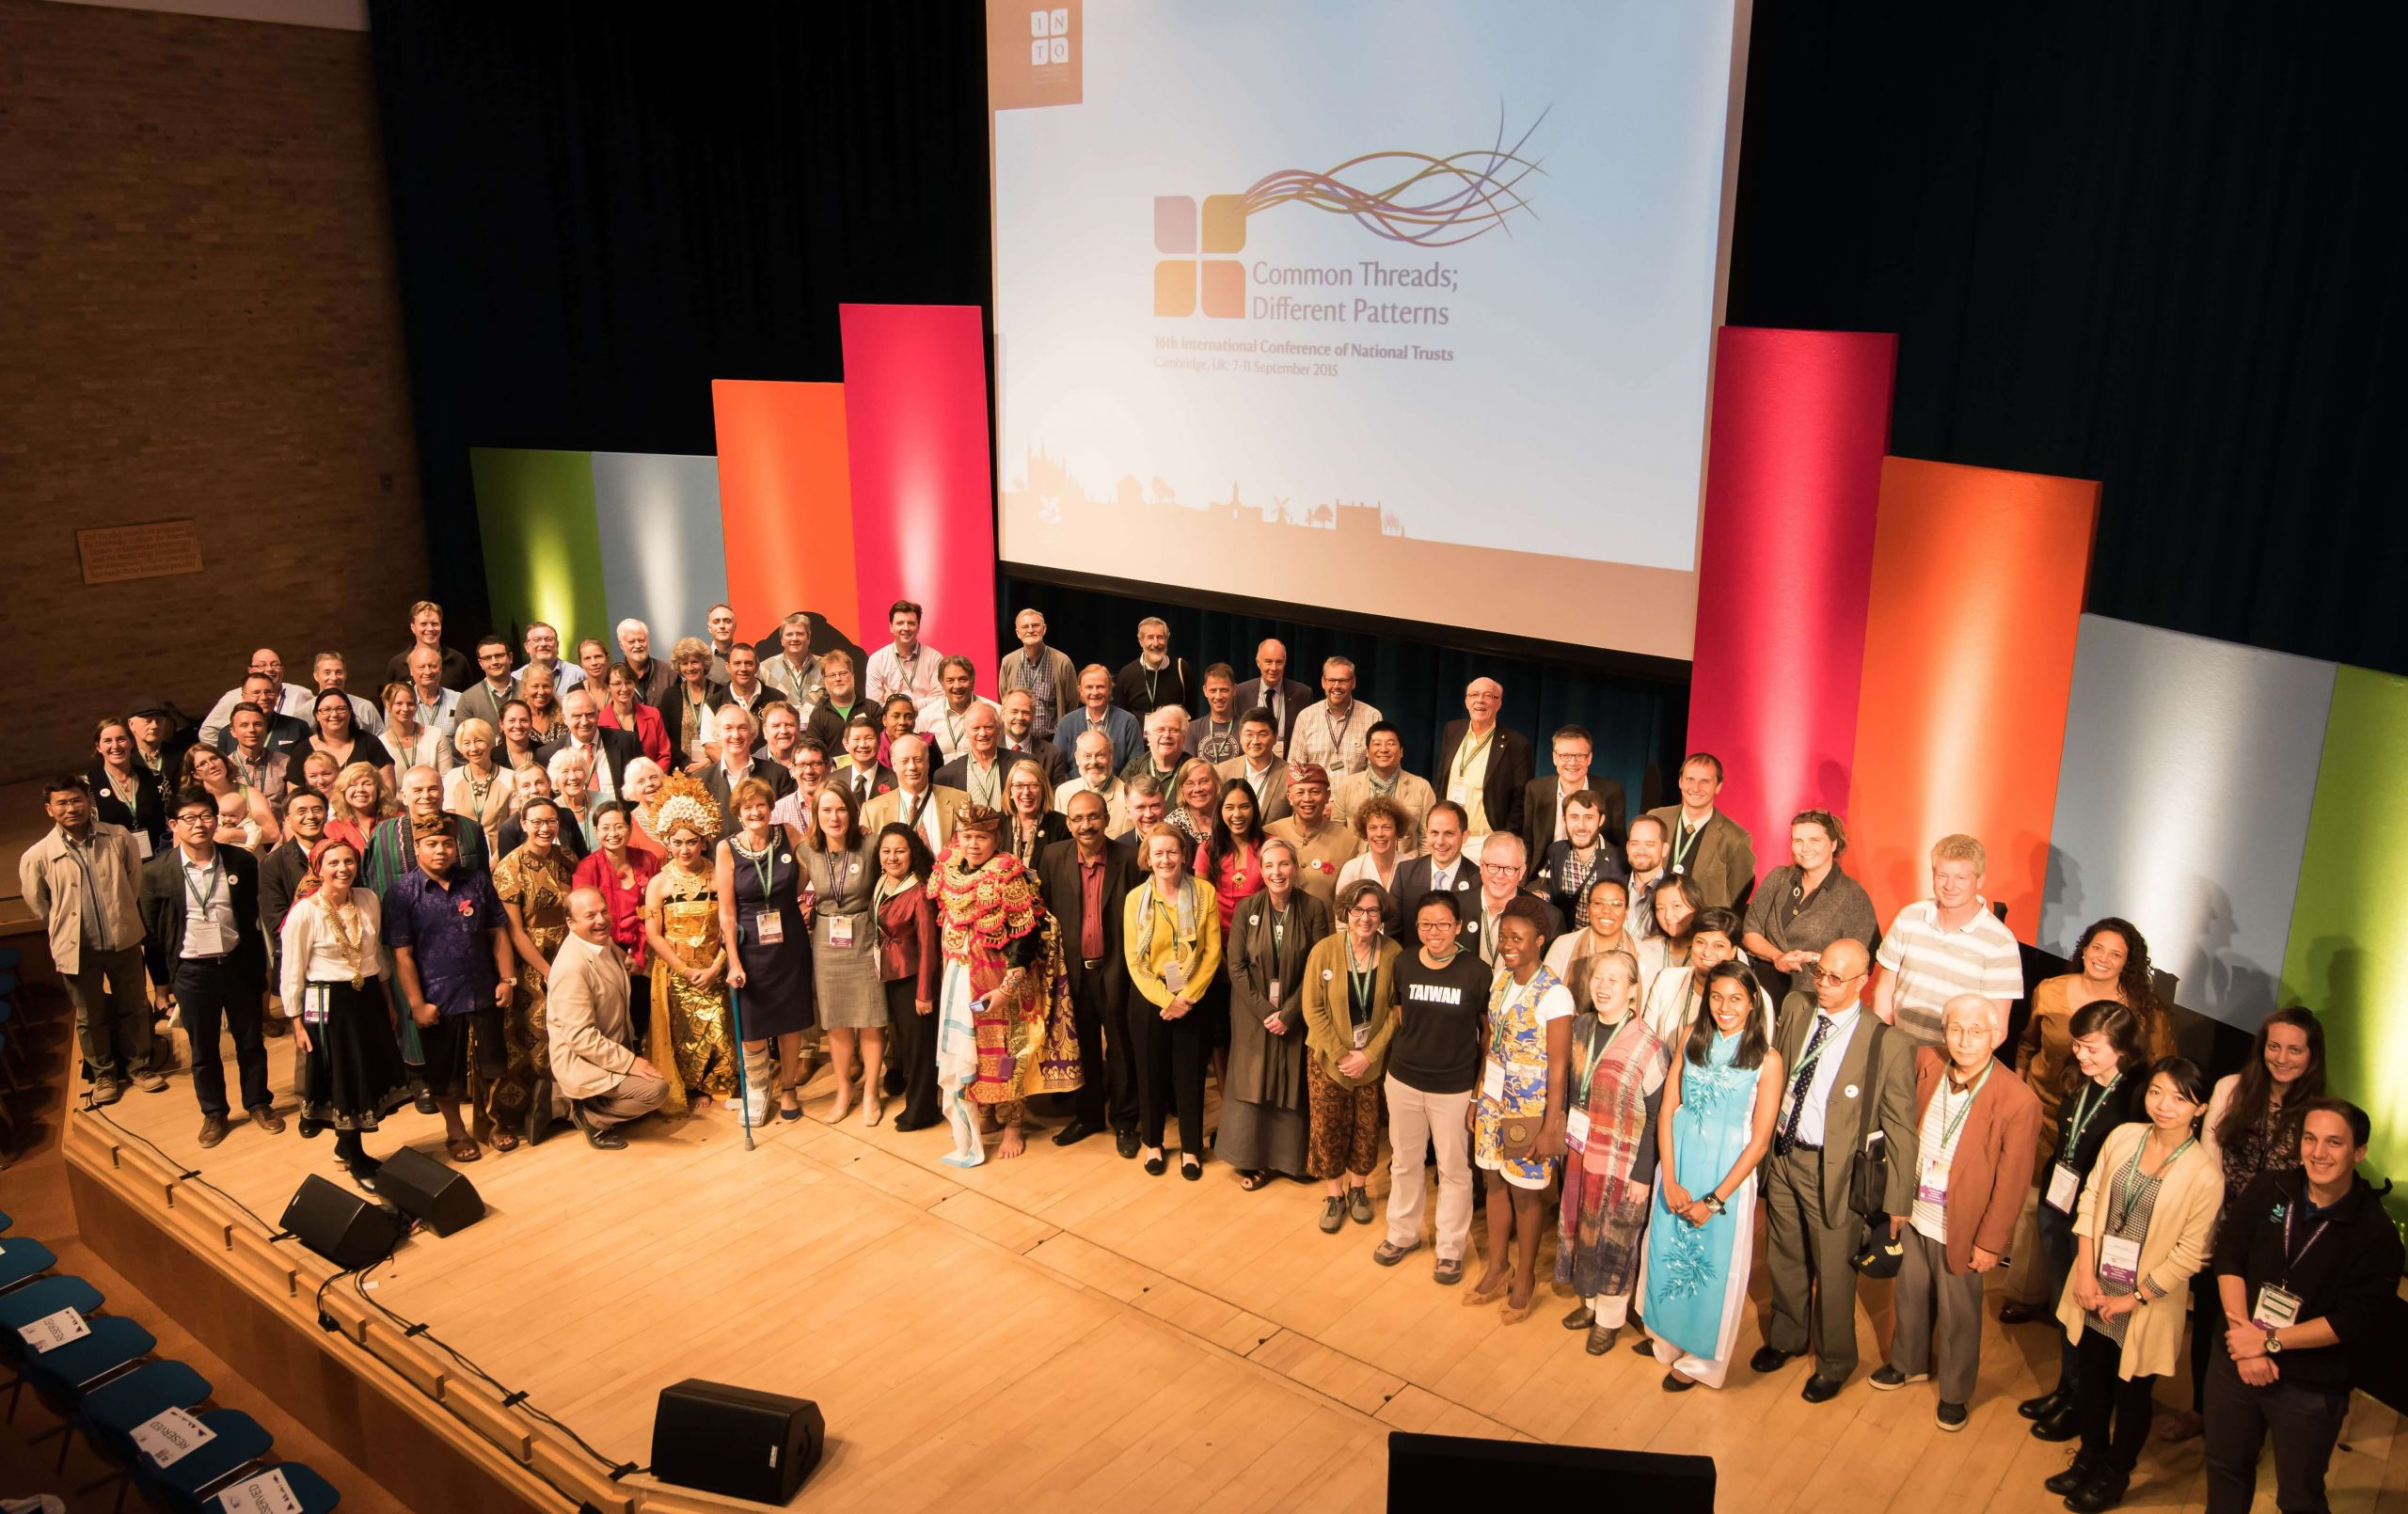 ICNT 16 Group Photo cropped credit Paul Tibbs